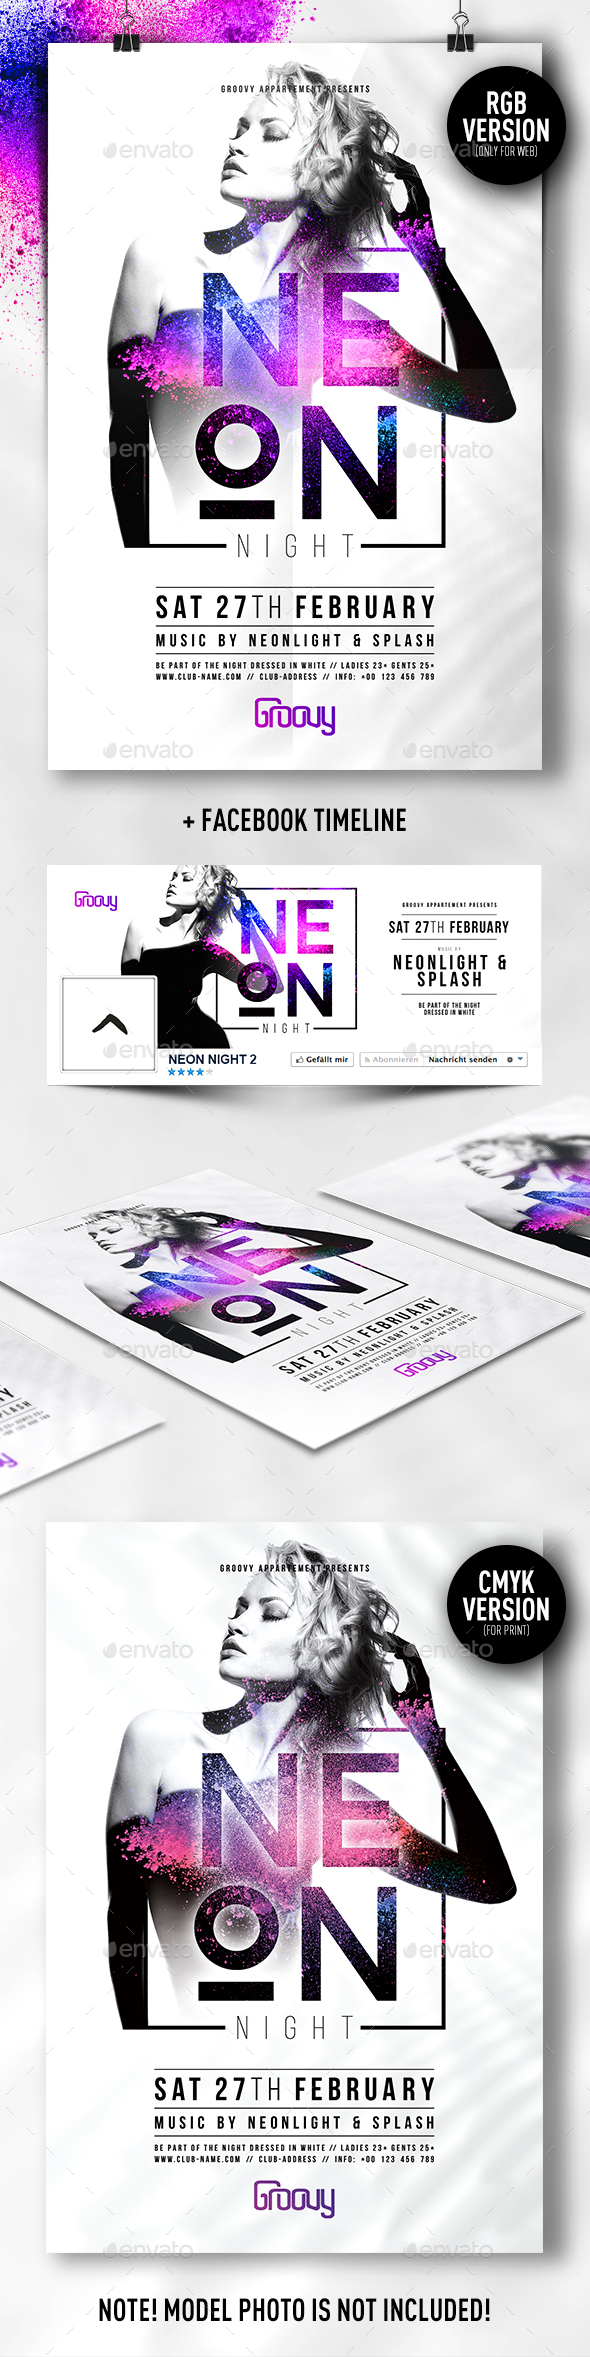 Neon Night V2 Flyer - Clubs & Parties Events